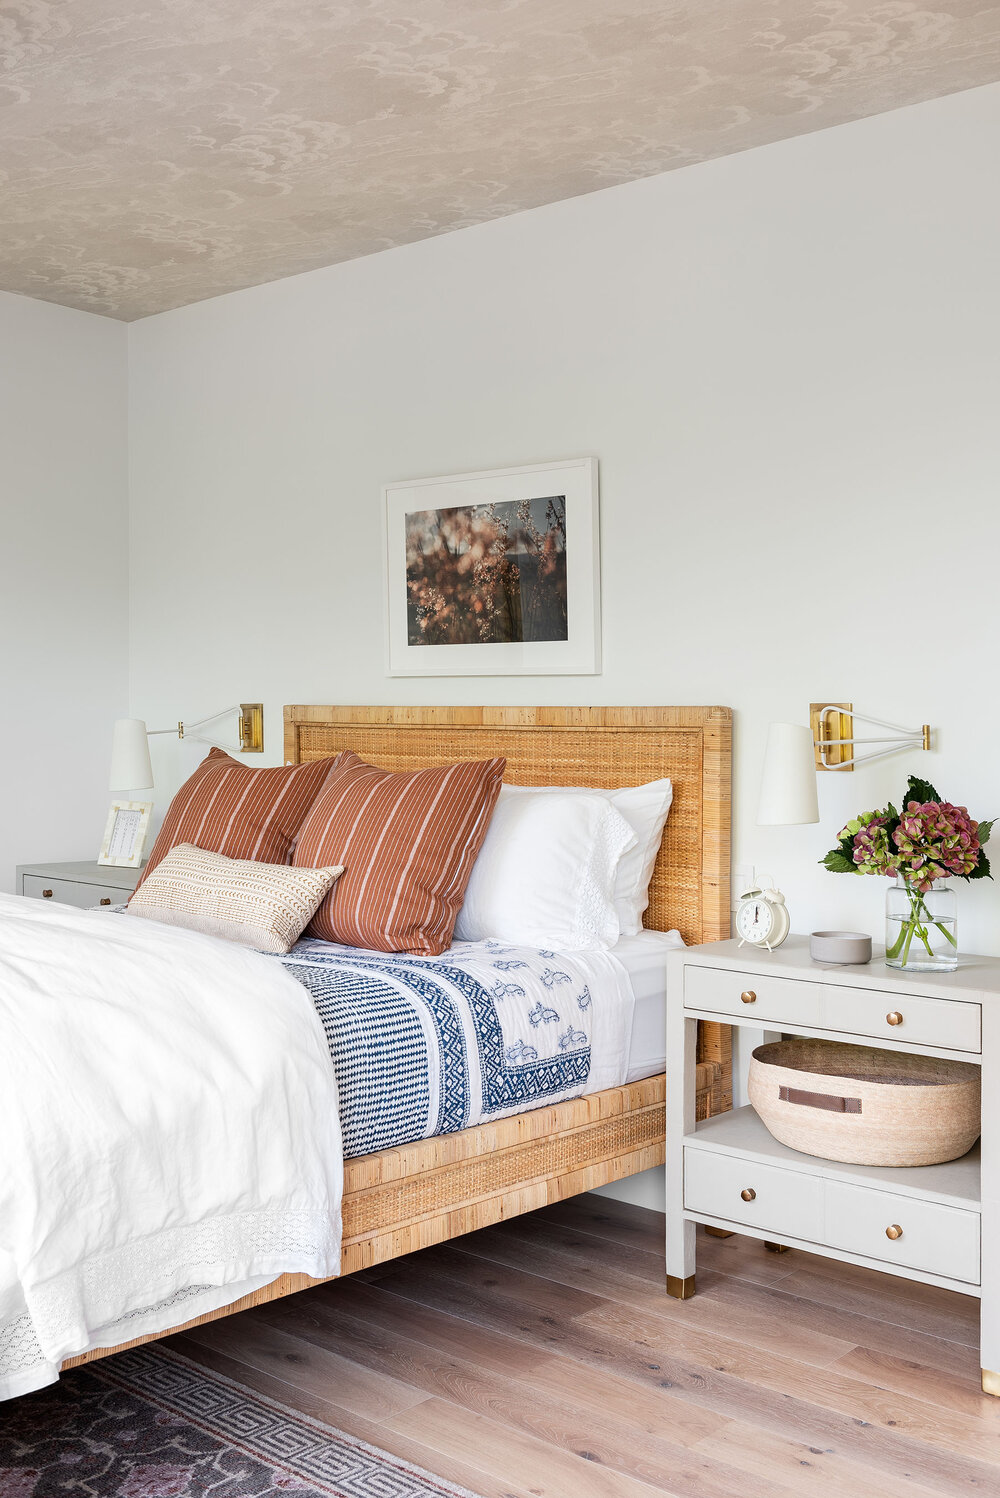 Kids Spaces We Secrelty Want to Move Into